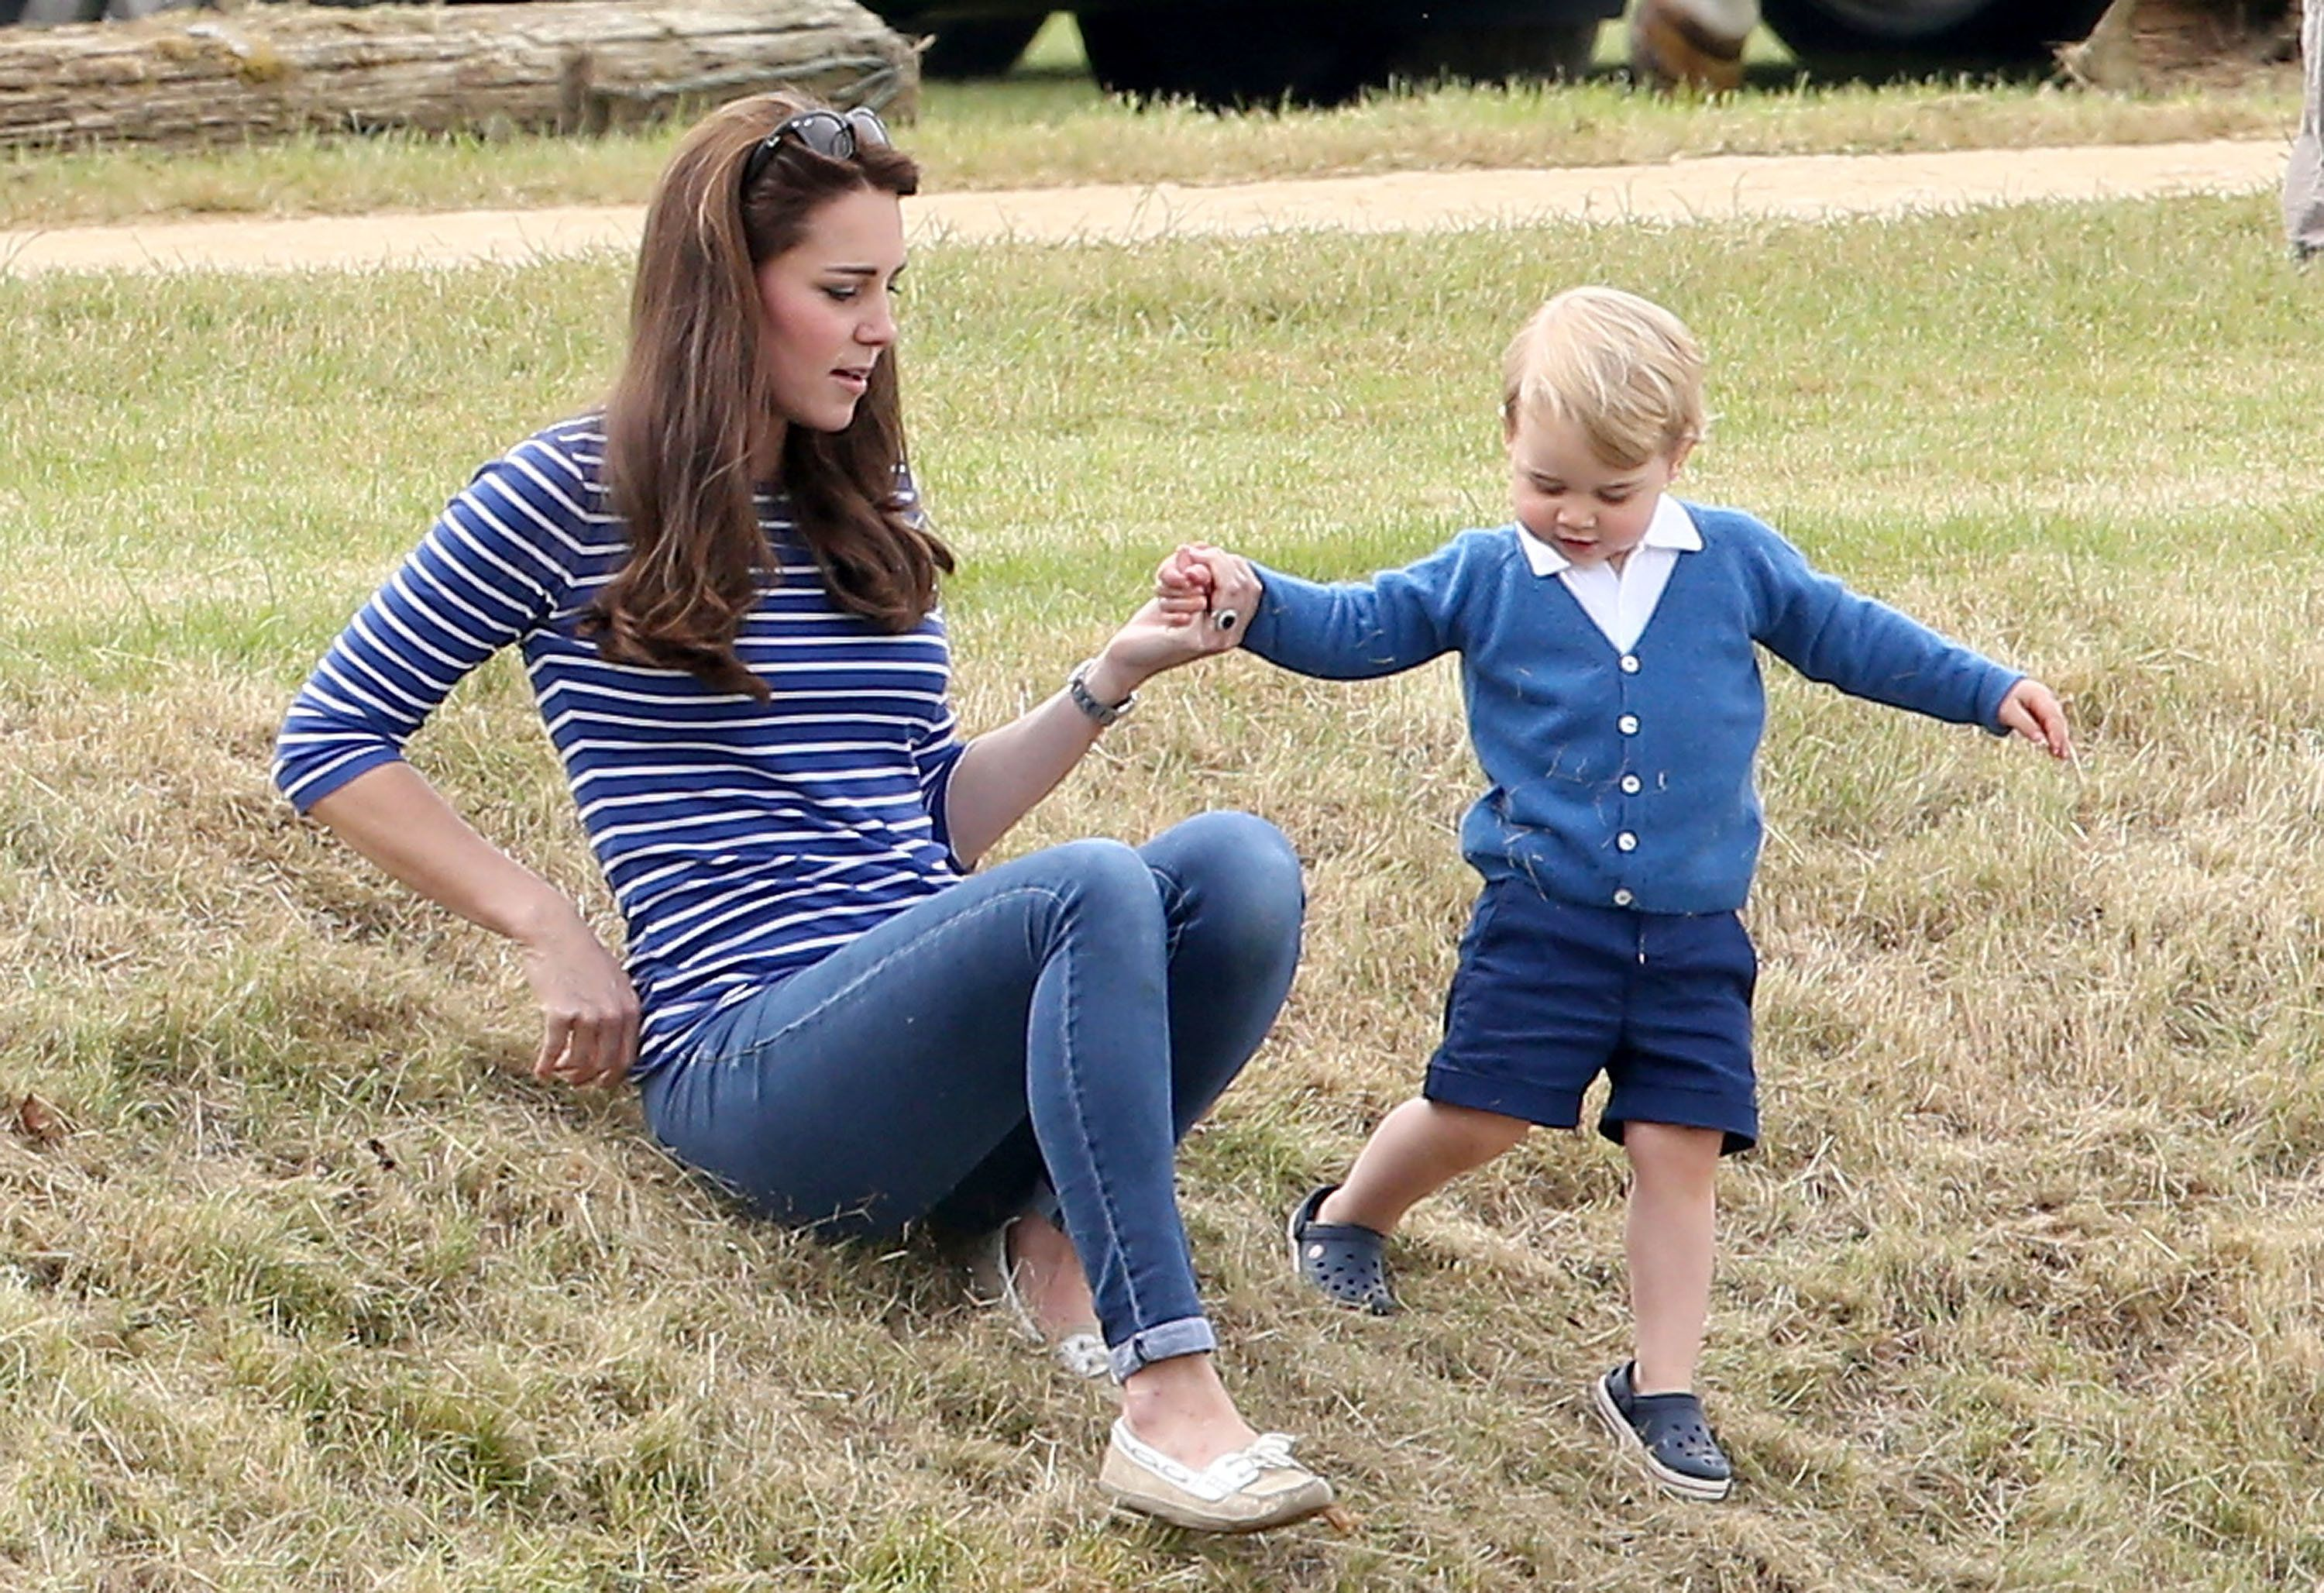 TheDuchess of Cambridge and Prince George attend the Gigaset Charity Polo Match on June 14, 2015, in Tetbury, England.